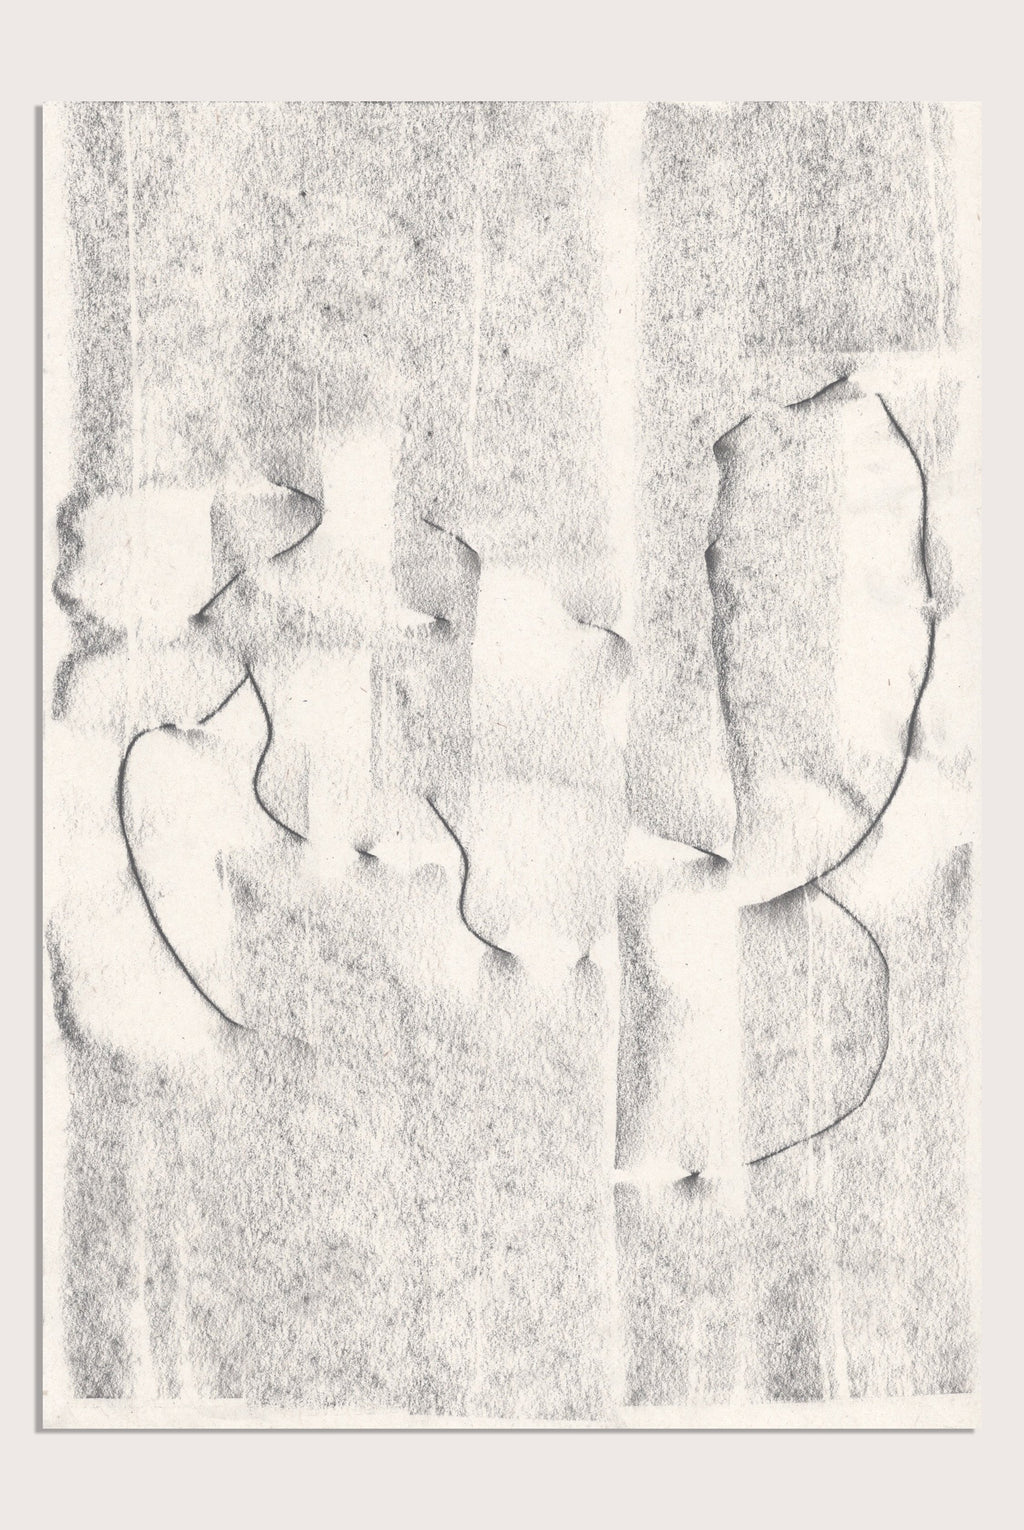 'Fleeting III', a minimalist, abstract drawing by contemporary, woman artist Kayleigh Harris